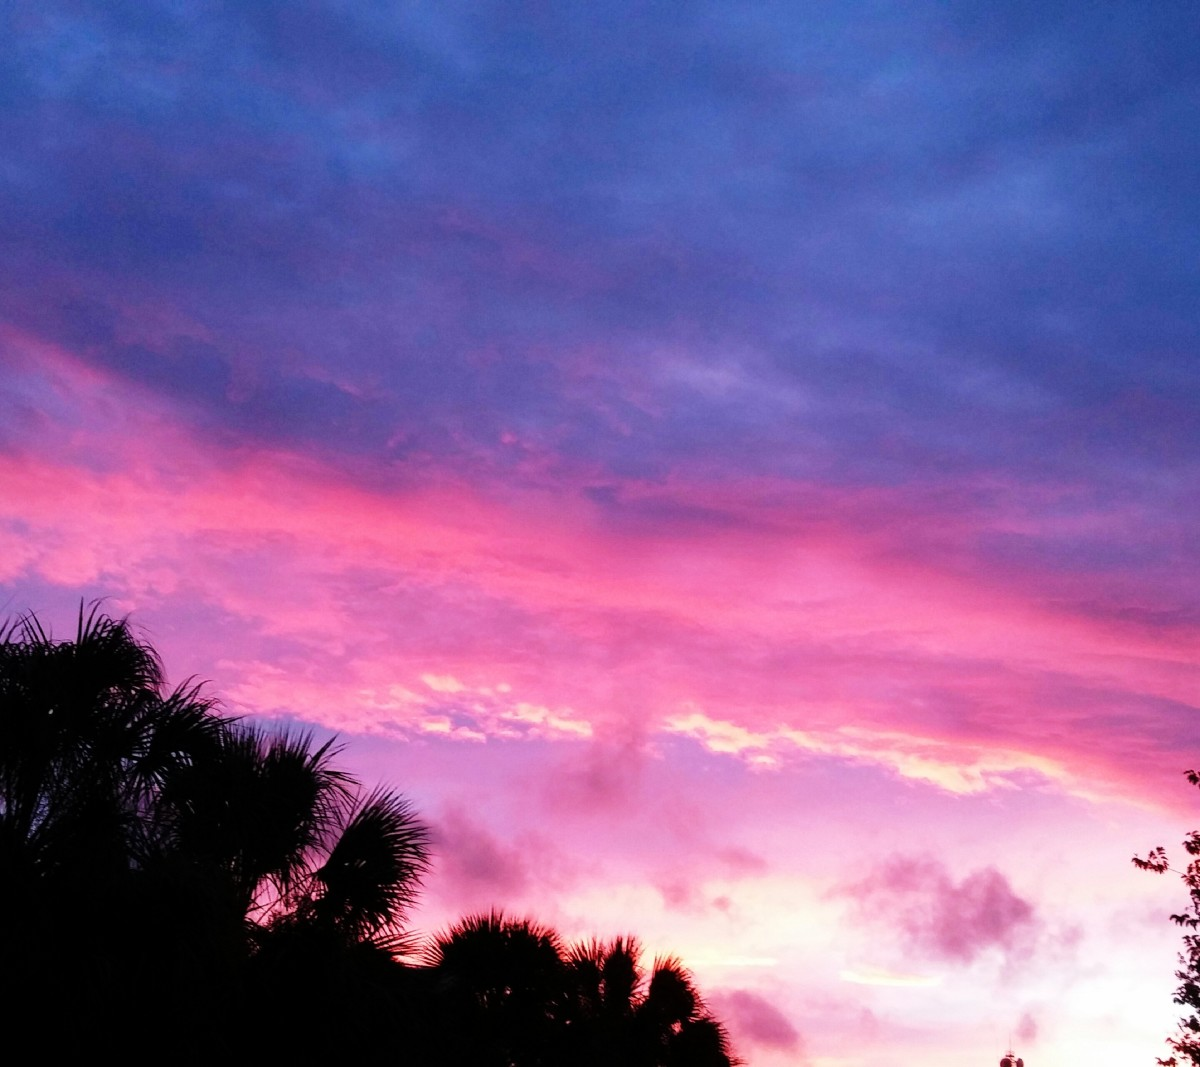 Divine presence can be found in the radience of a sunset.